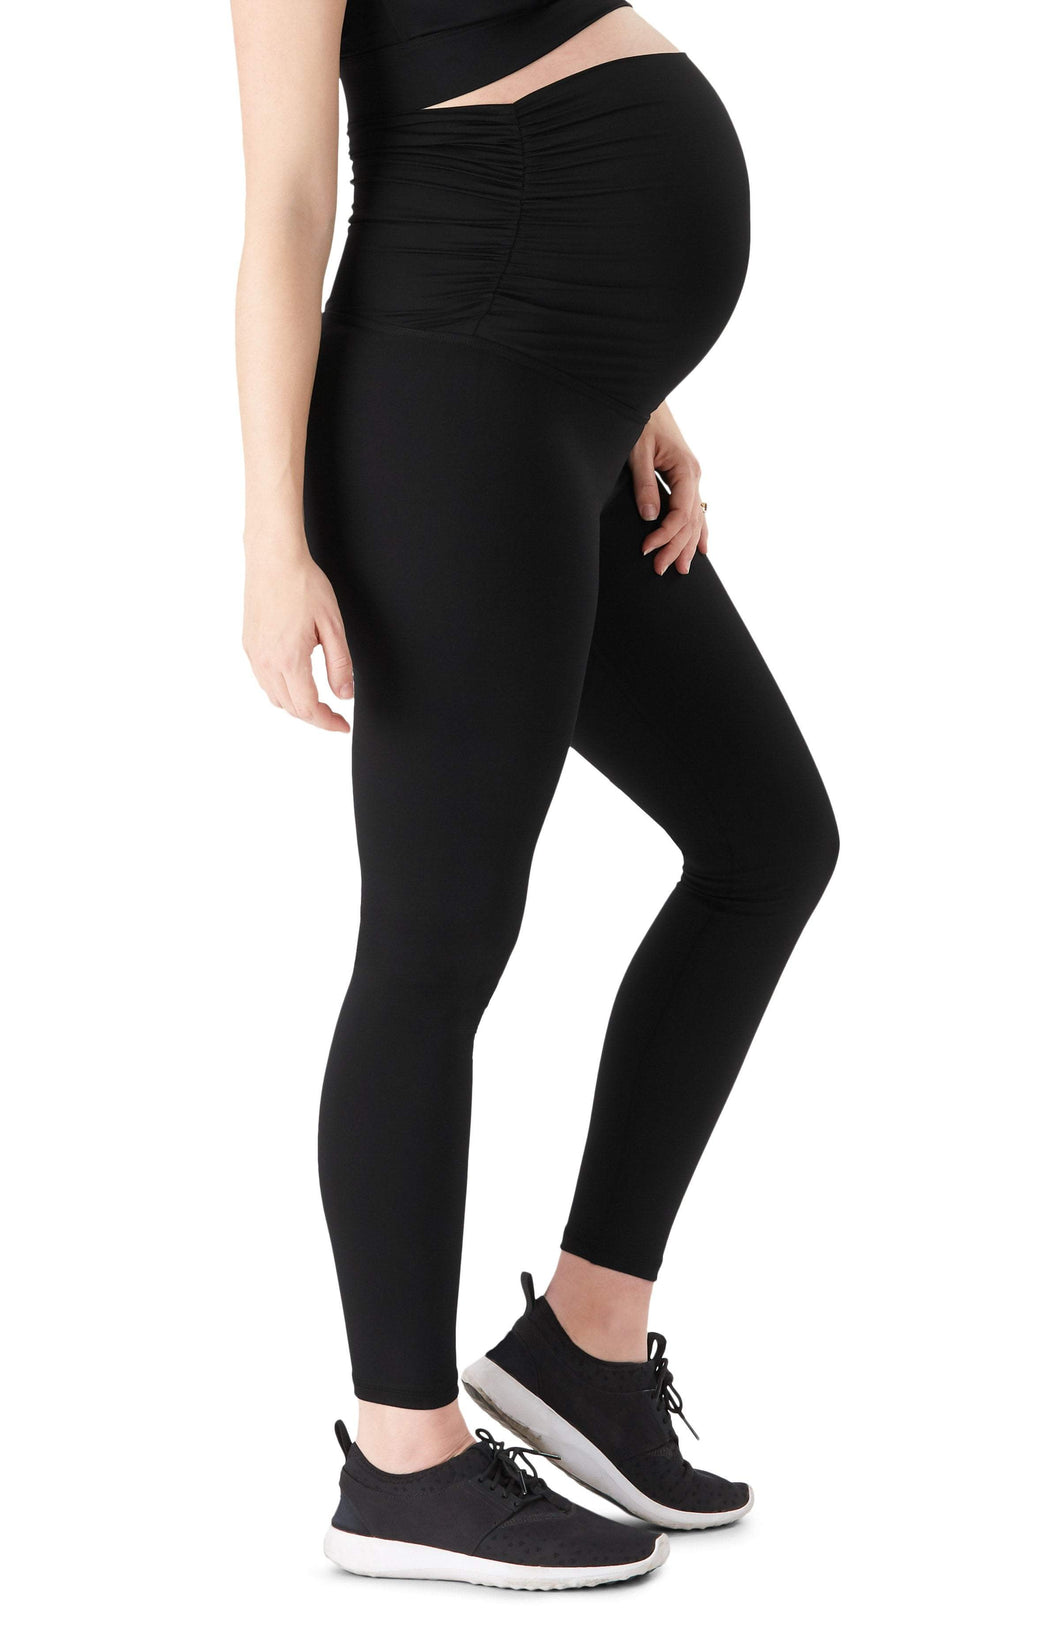 Belly Bandit Black / S Belly Bandit® ActiveWear Essential Leggings